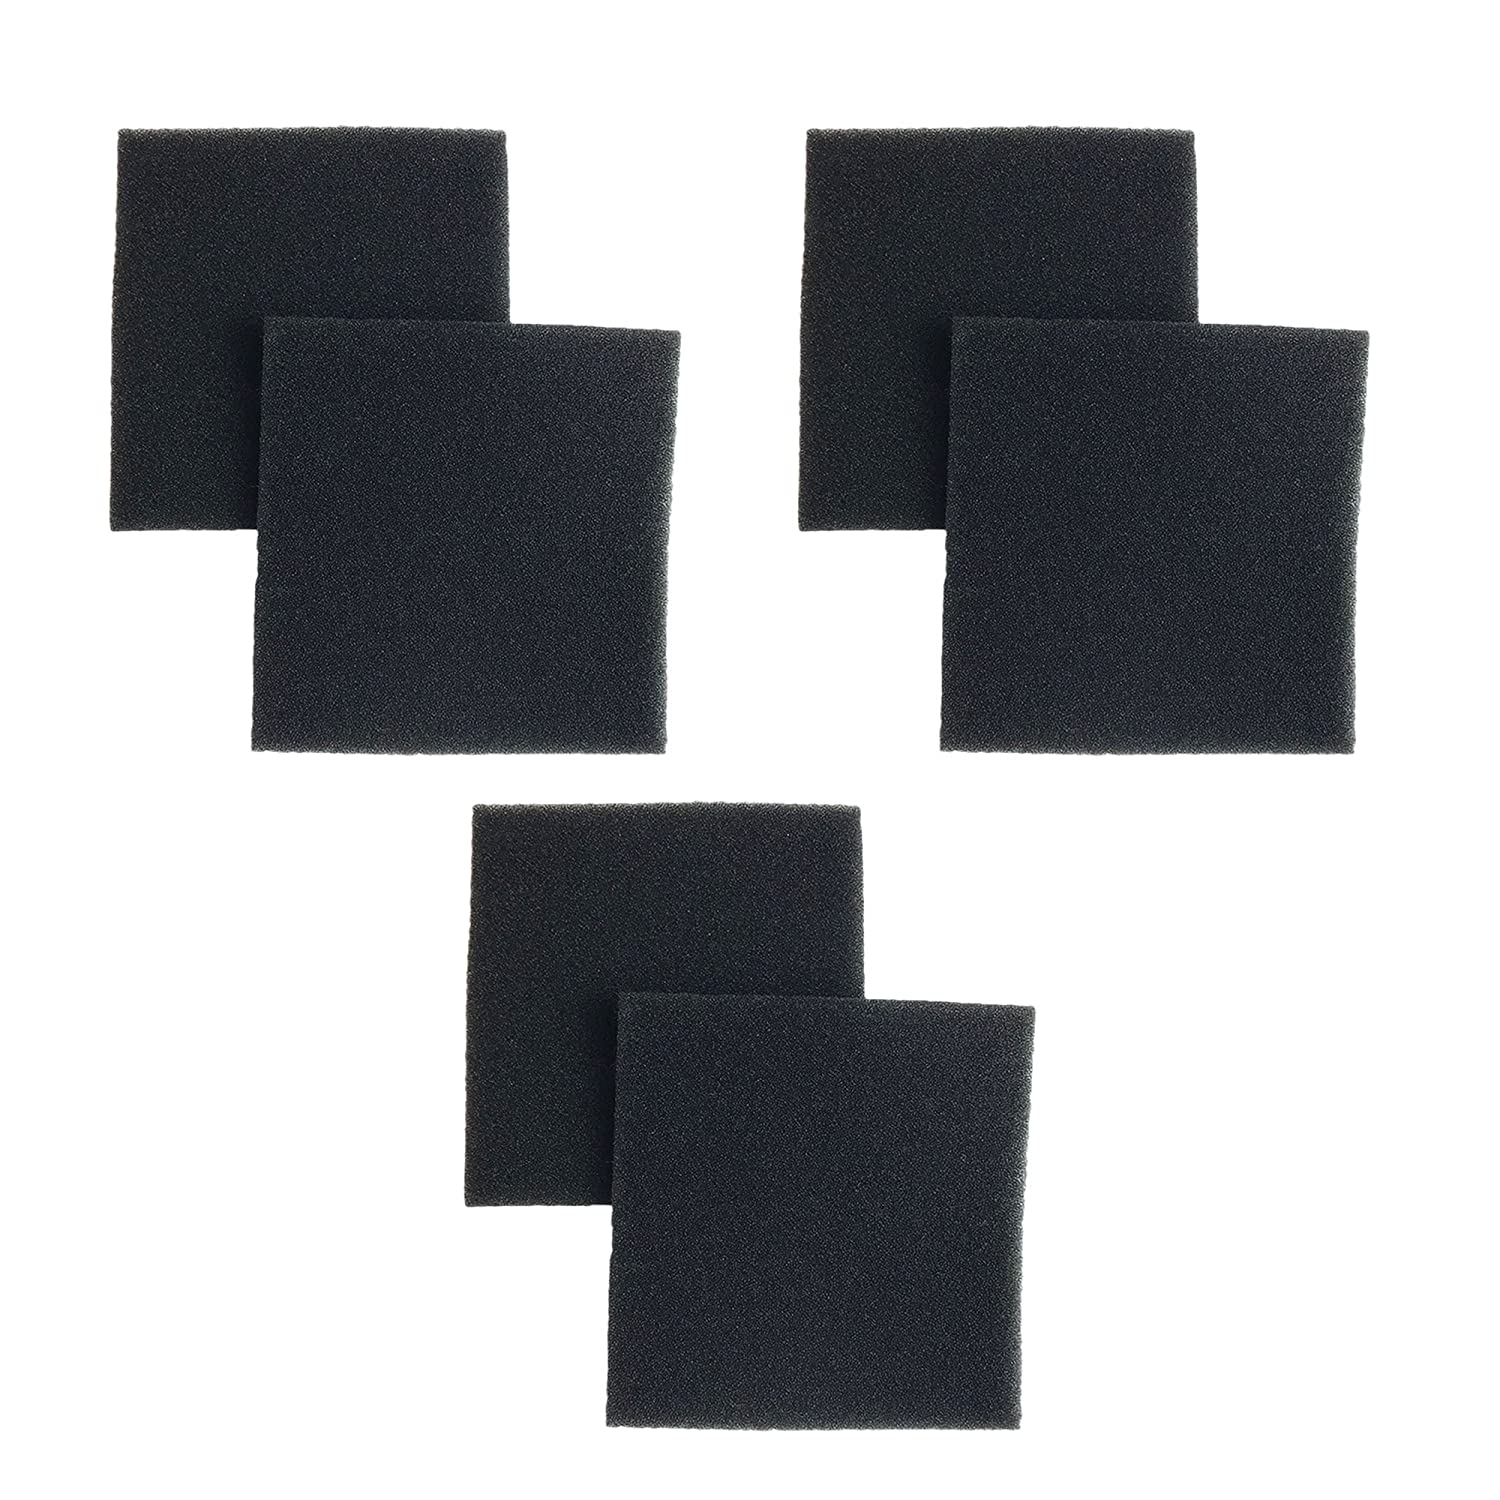 6 Kenmore Sears Progressive Double Layer Foam Filter CF1, Panasonic Vacuum Cleaners, Compare to Part # CF1, CF-1, 20-86883, 86883, 2086883, 4370616, 8175084, 20-40321, 2040321, 40321, Ultracare Kenmore 610461,Designed and Engineered by Crucial Vacuum